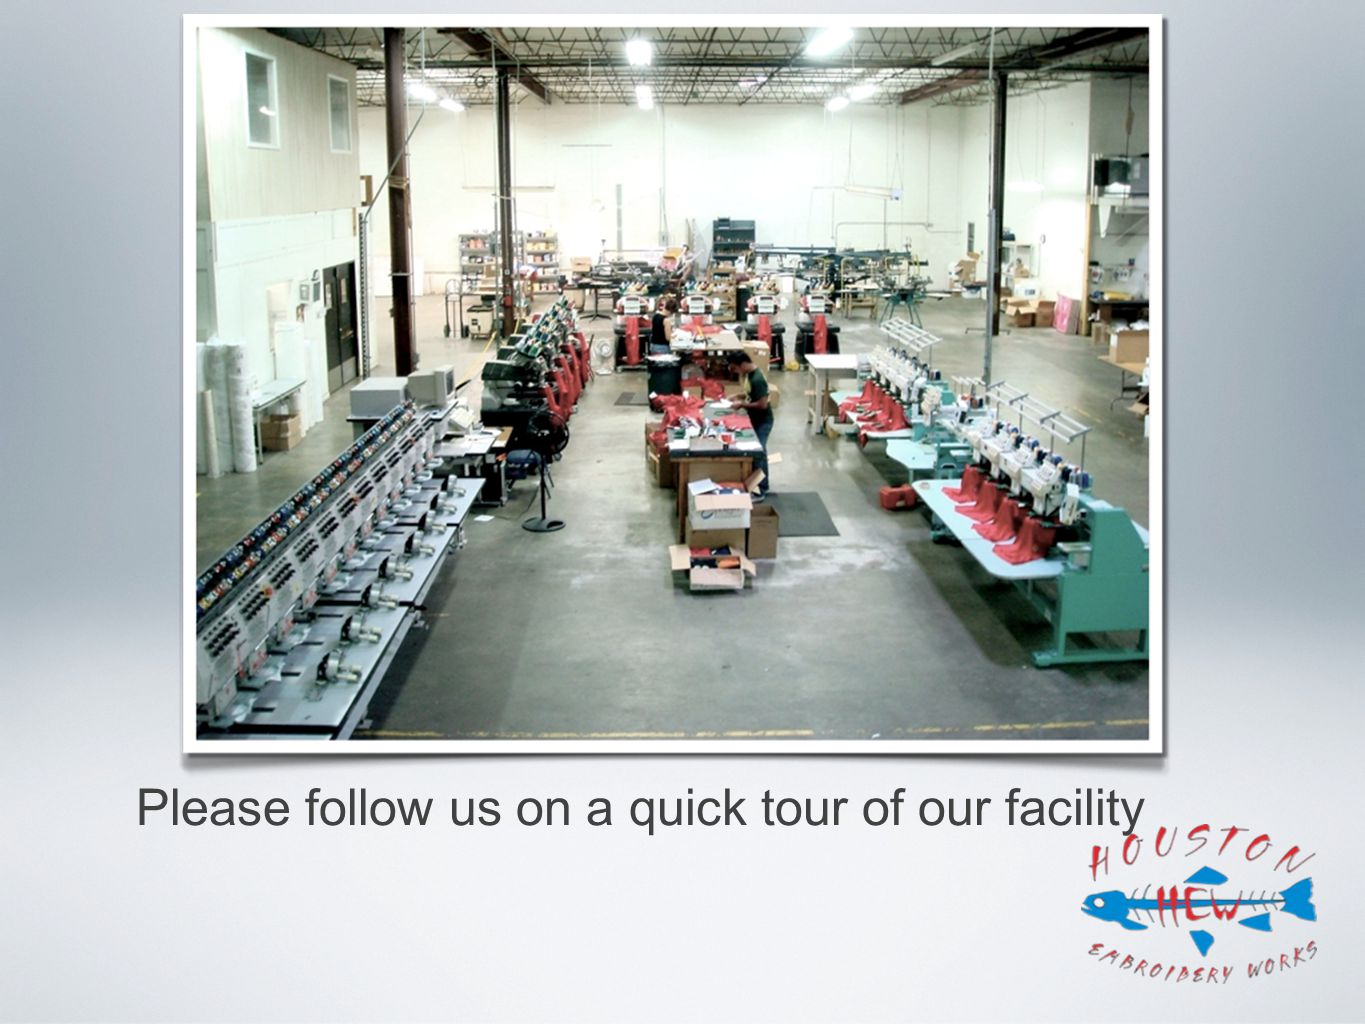 Please follow us on a quick tour of our facility